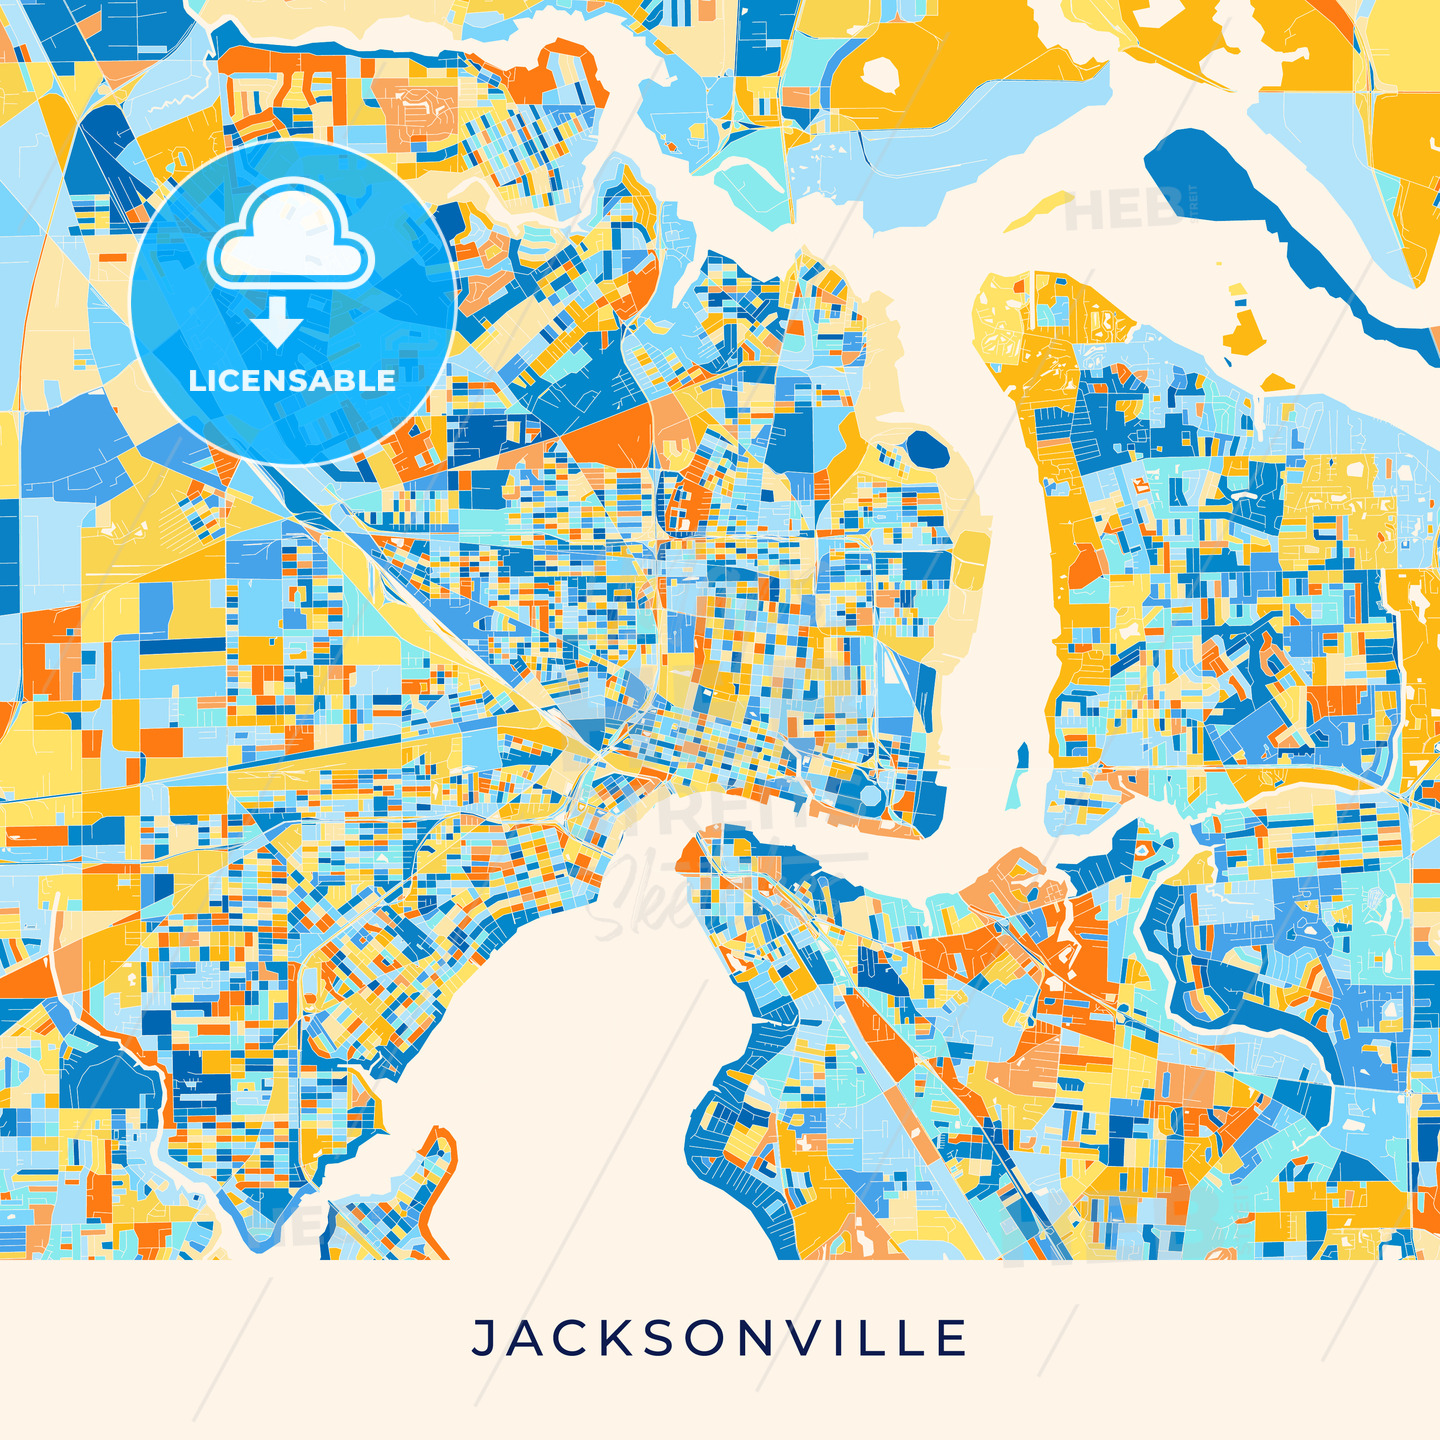 picture about Printable Map of Jacksonville Fl called Jacksonville colourful map poster template